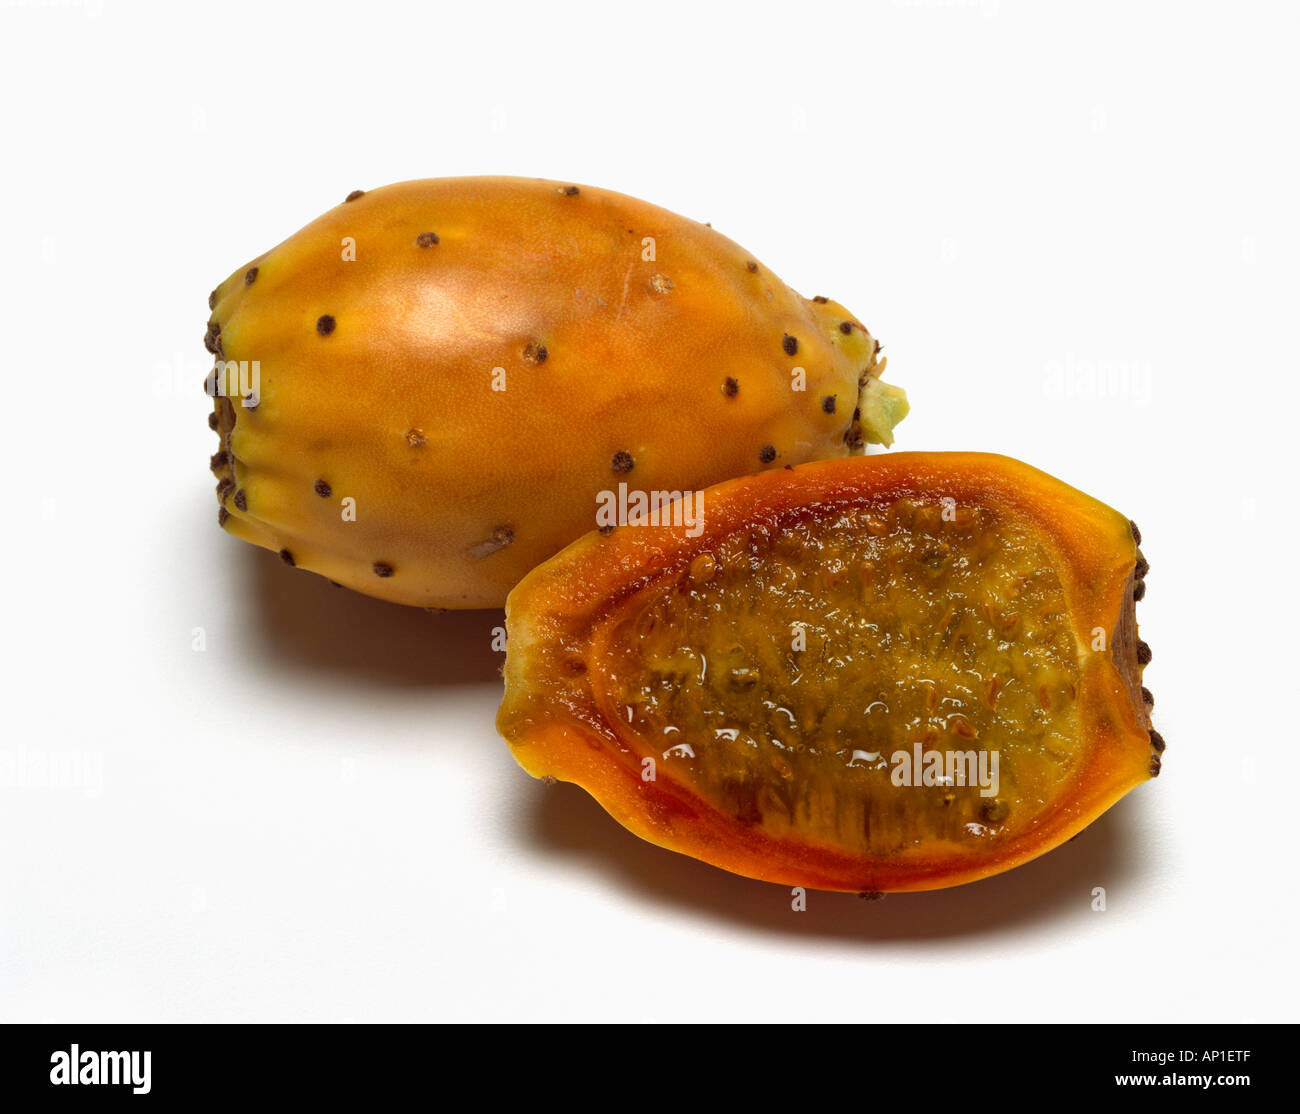 Agriculture - Ripe yellow cactus pears with one sliced open of the Opuntia genus / California, USA. - Stock Image